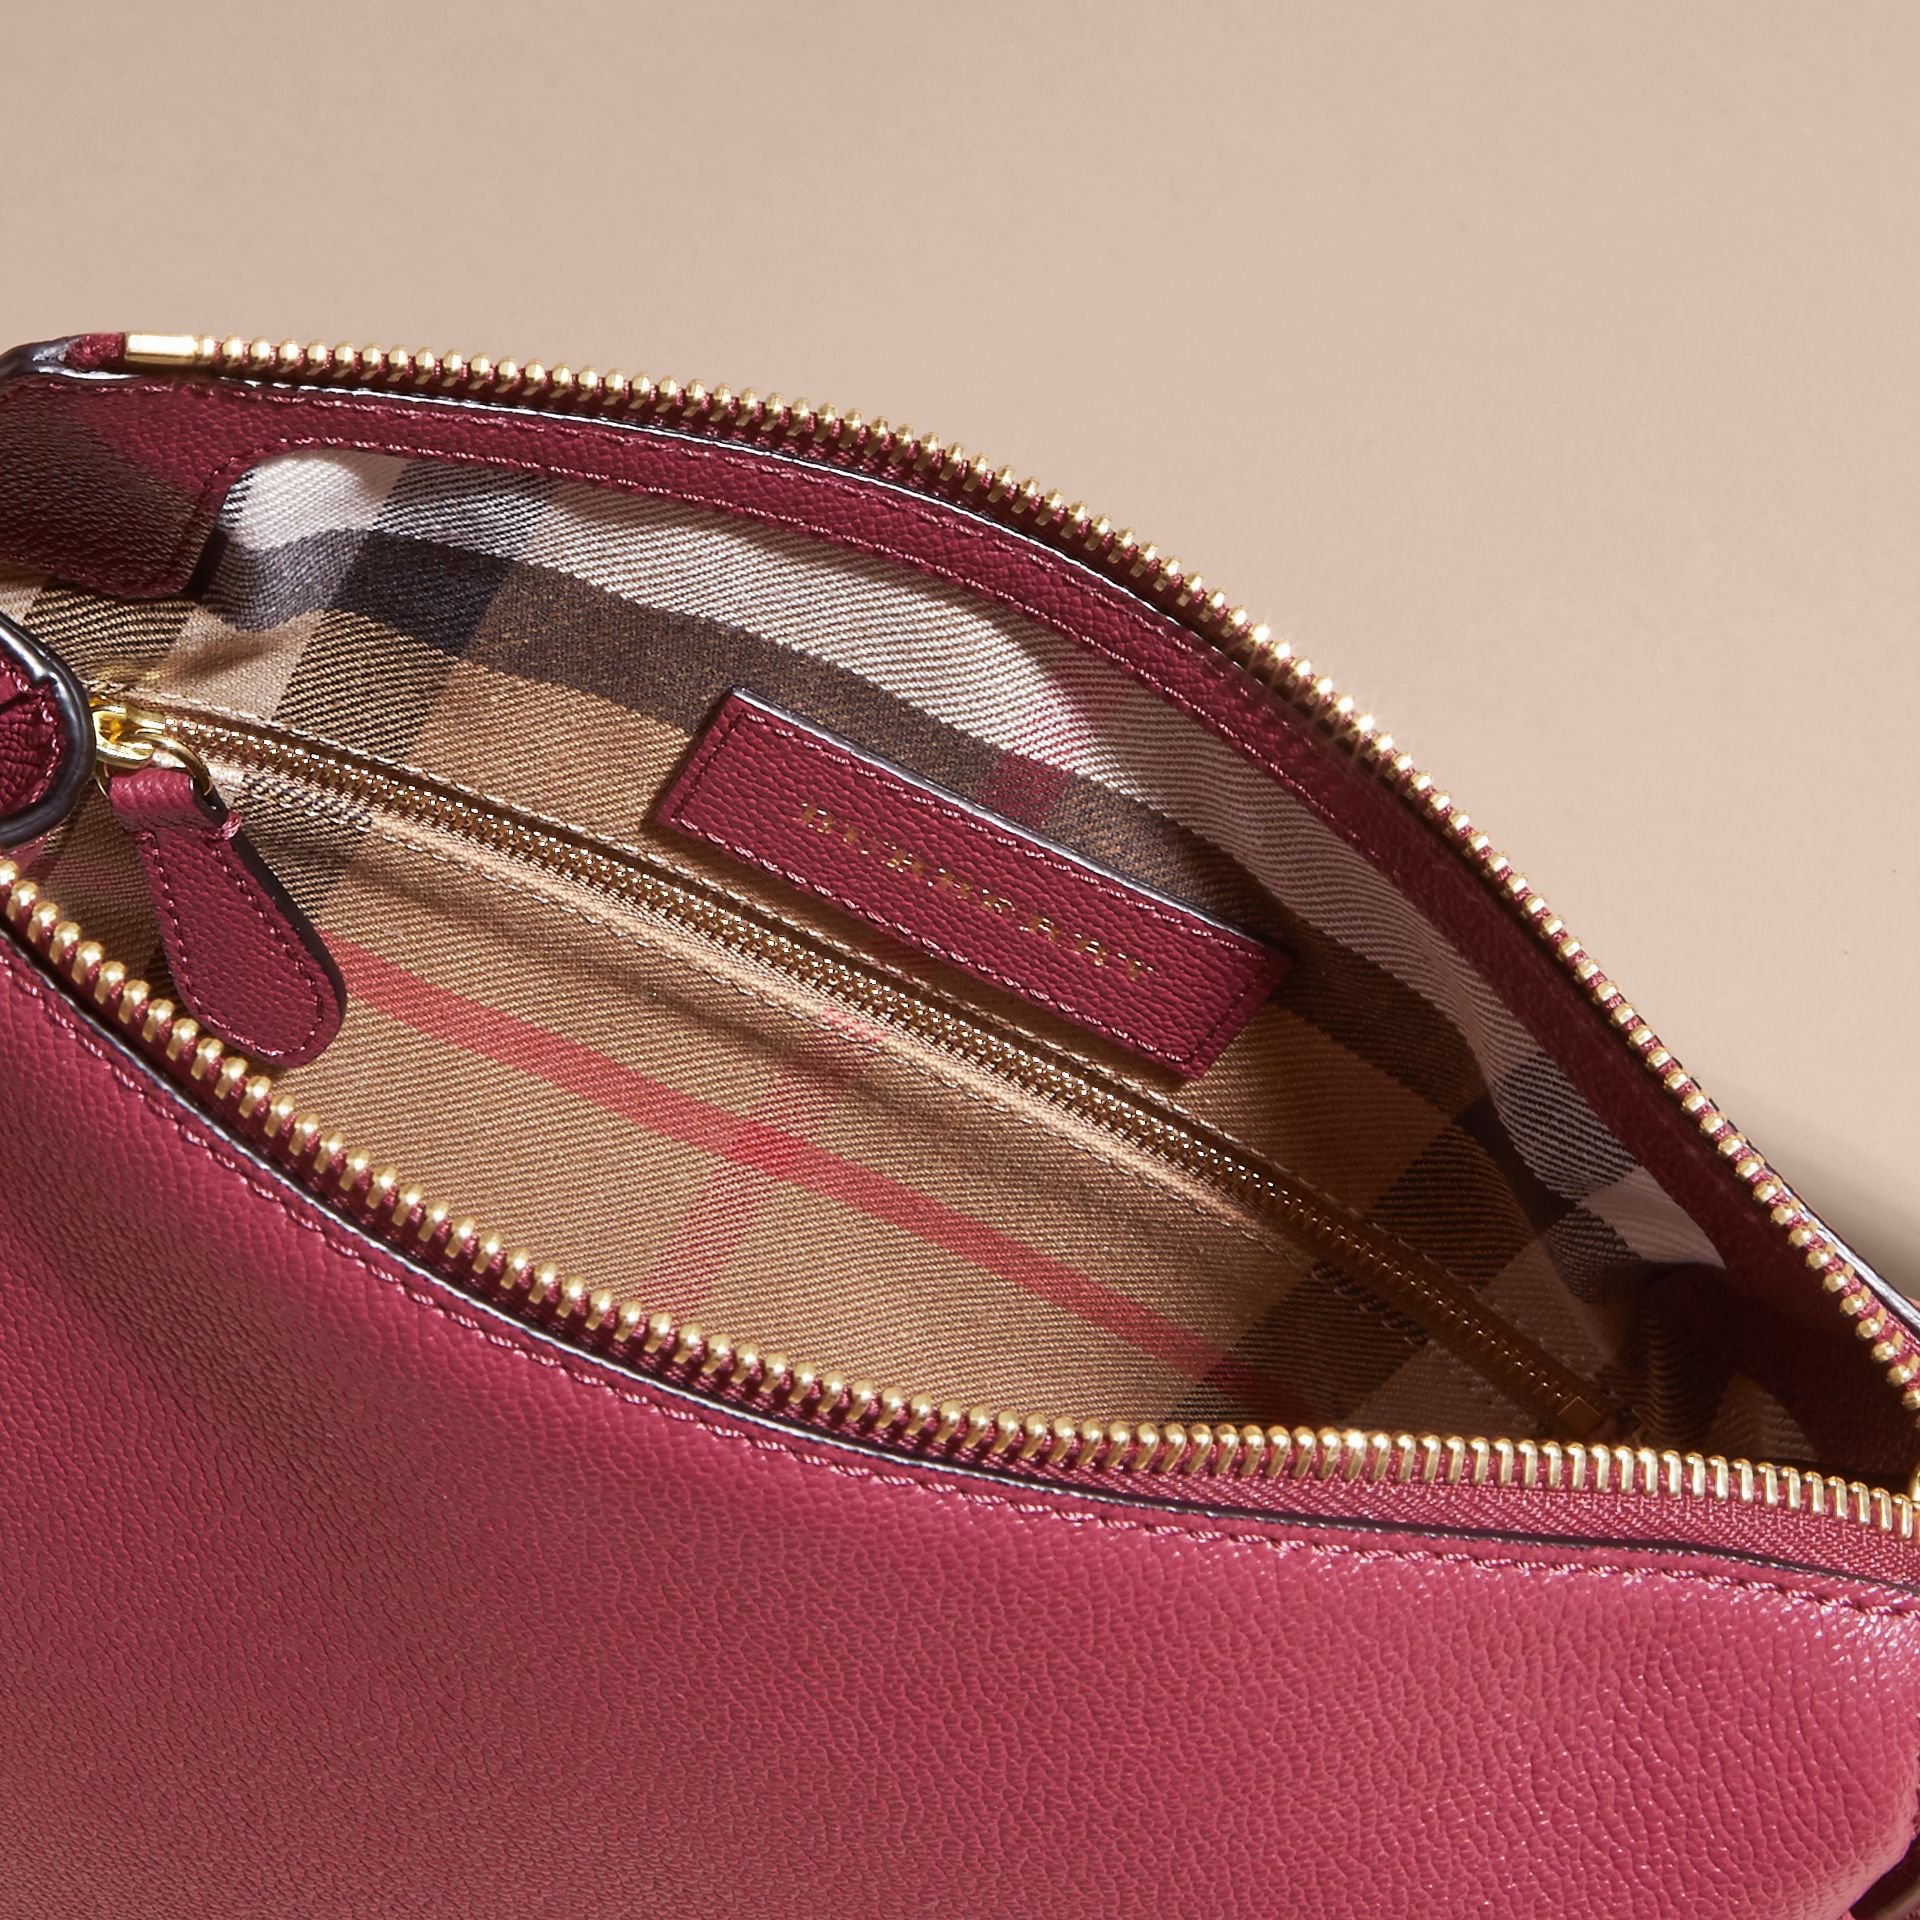 Buckle Detail Leather Crossbody Bag Dark Plum - gallery image 4